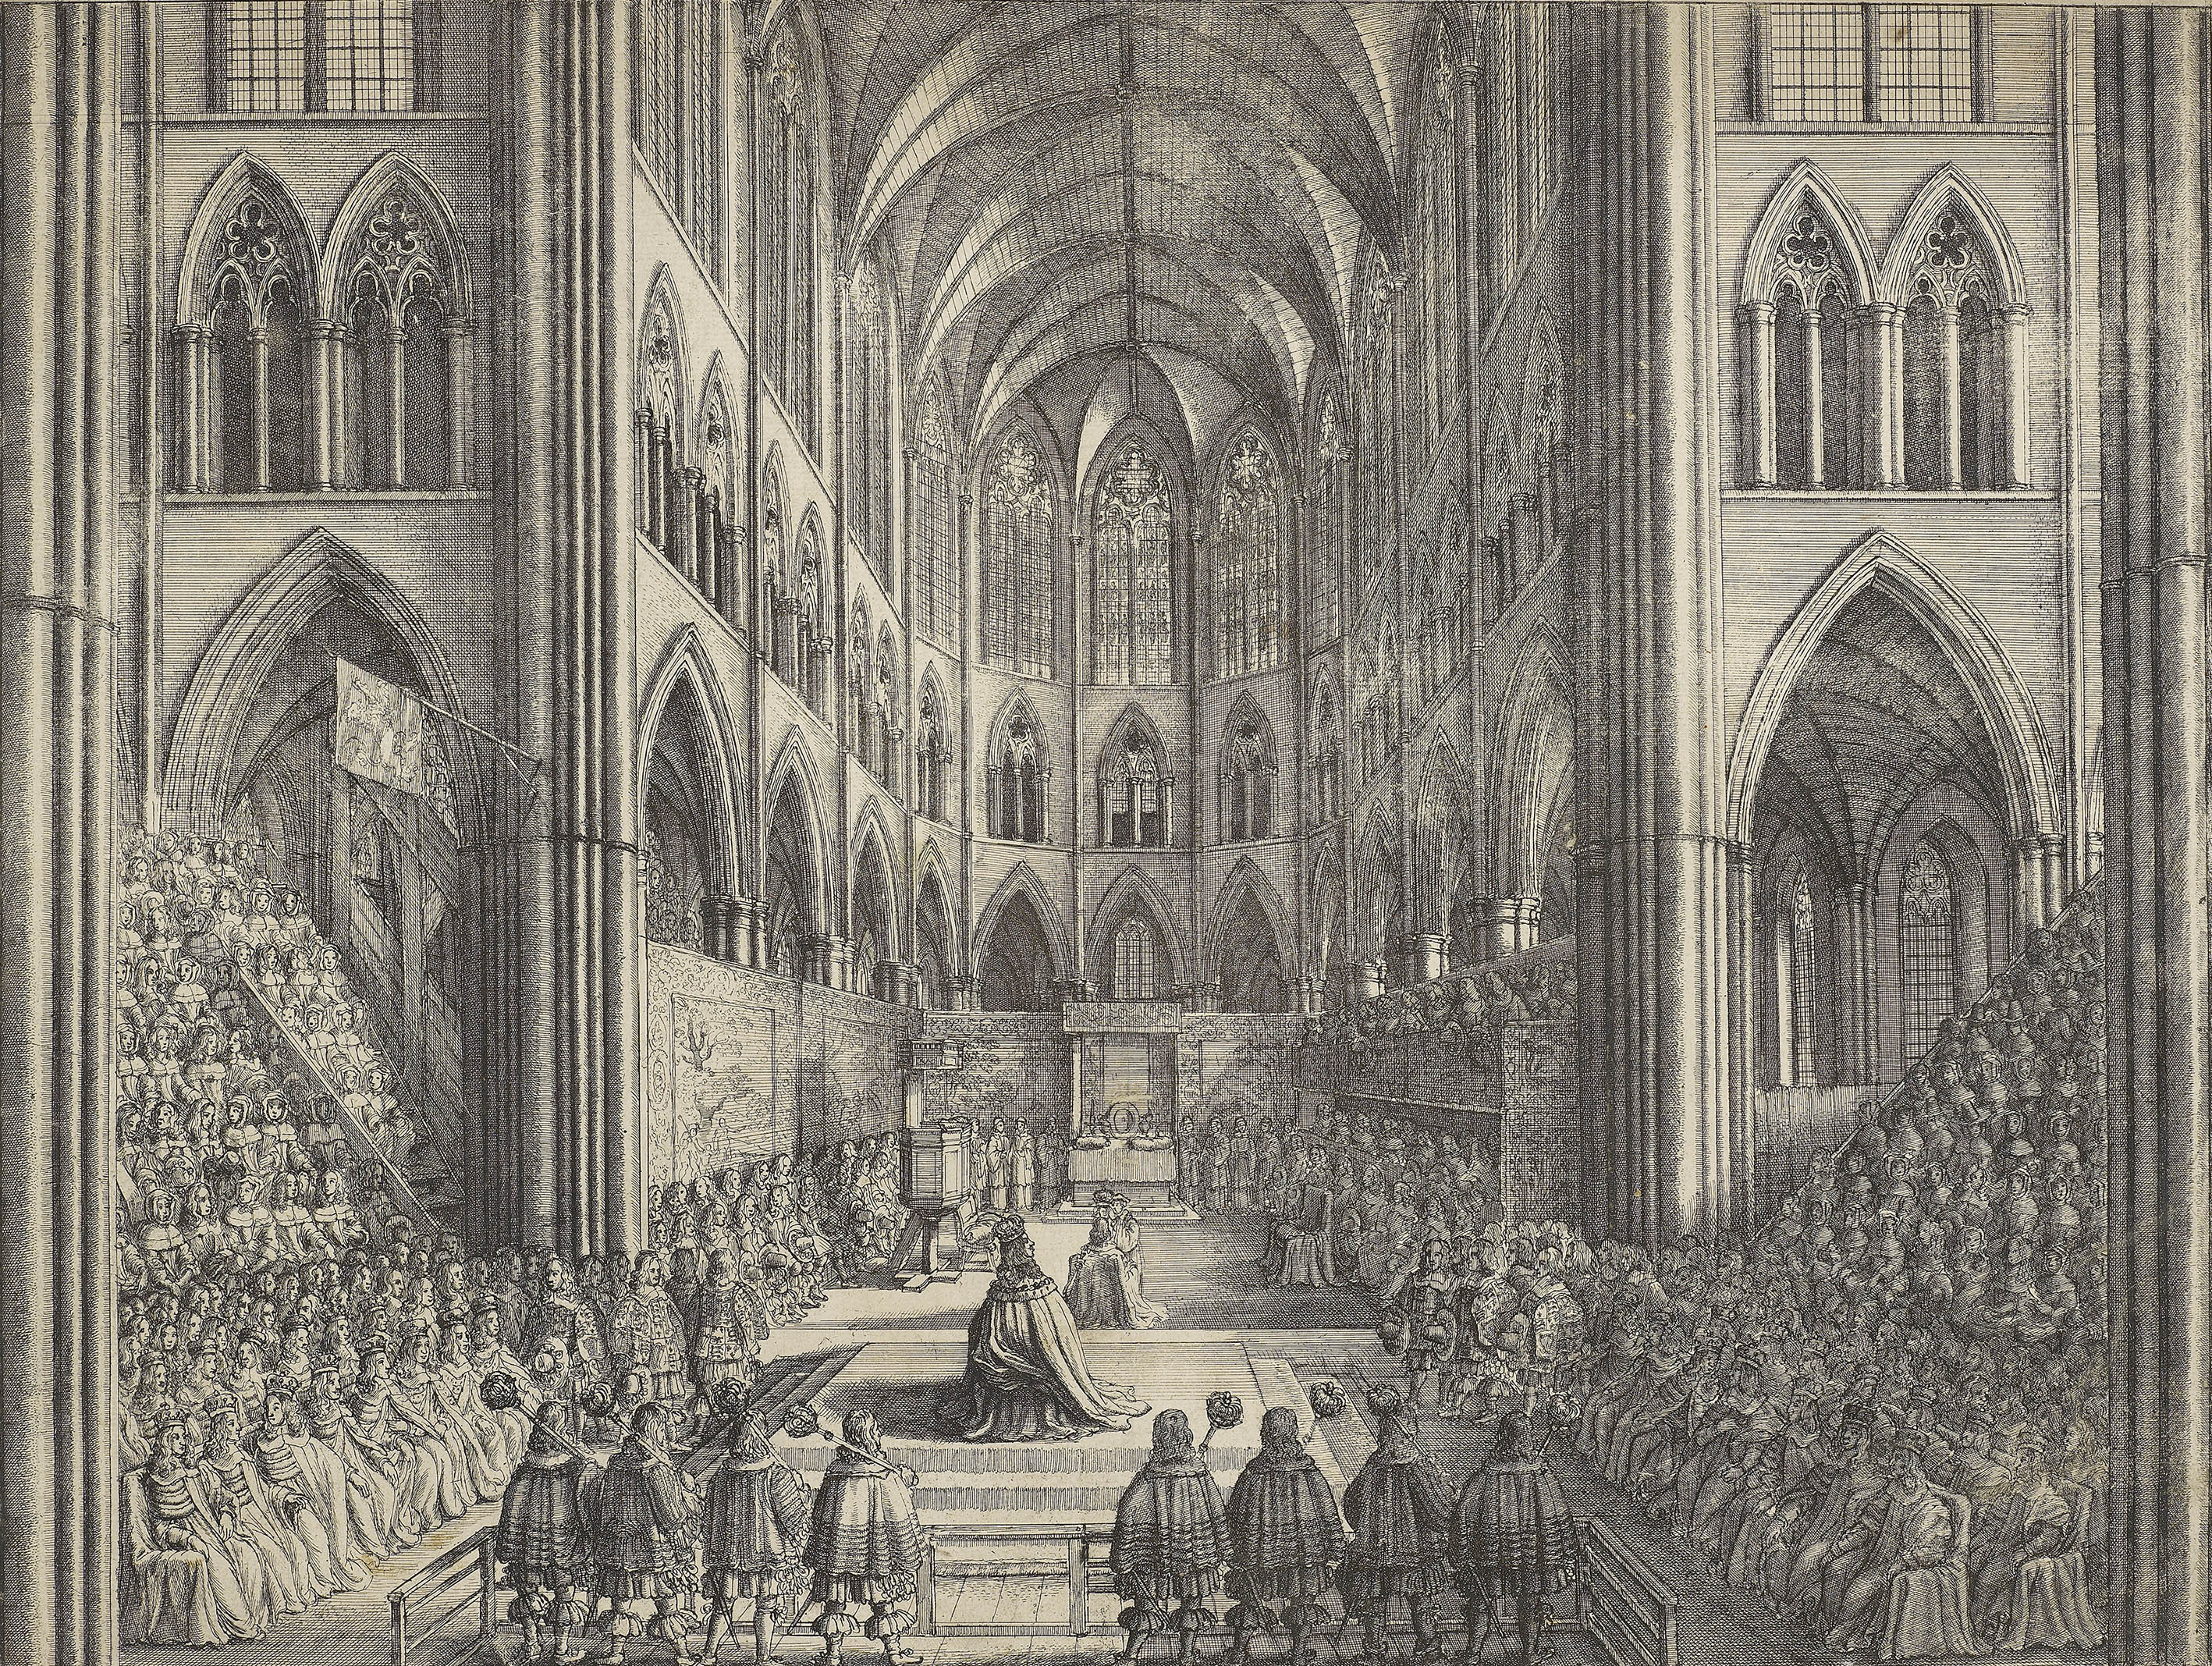 Coronation of King Charles the II in Westminster Abbey the 23 of April 1661, 1662